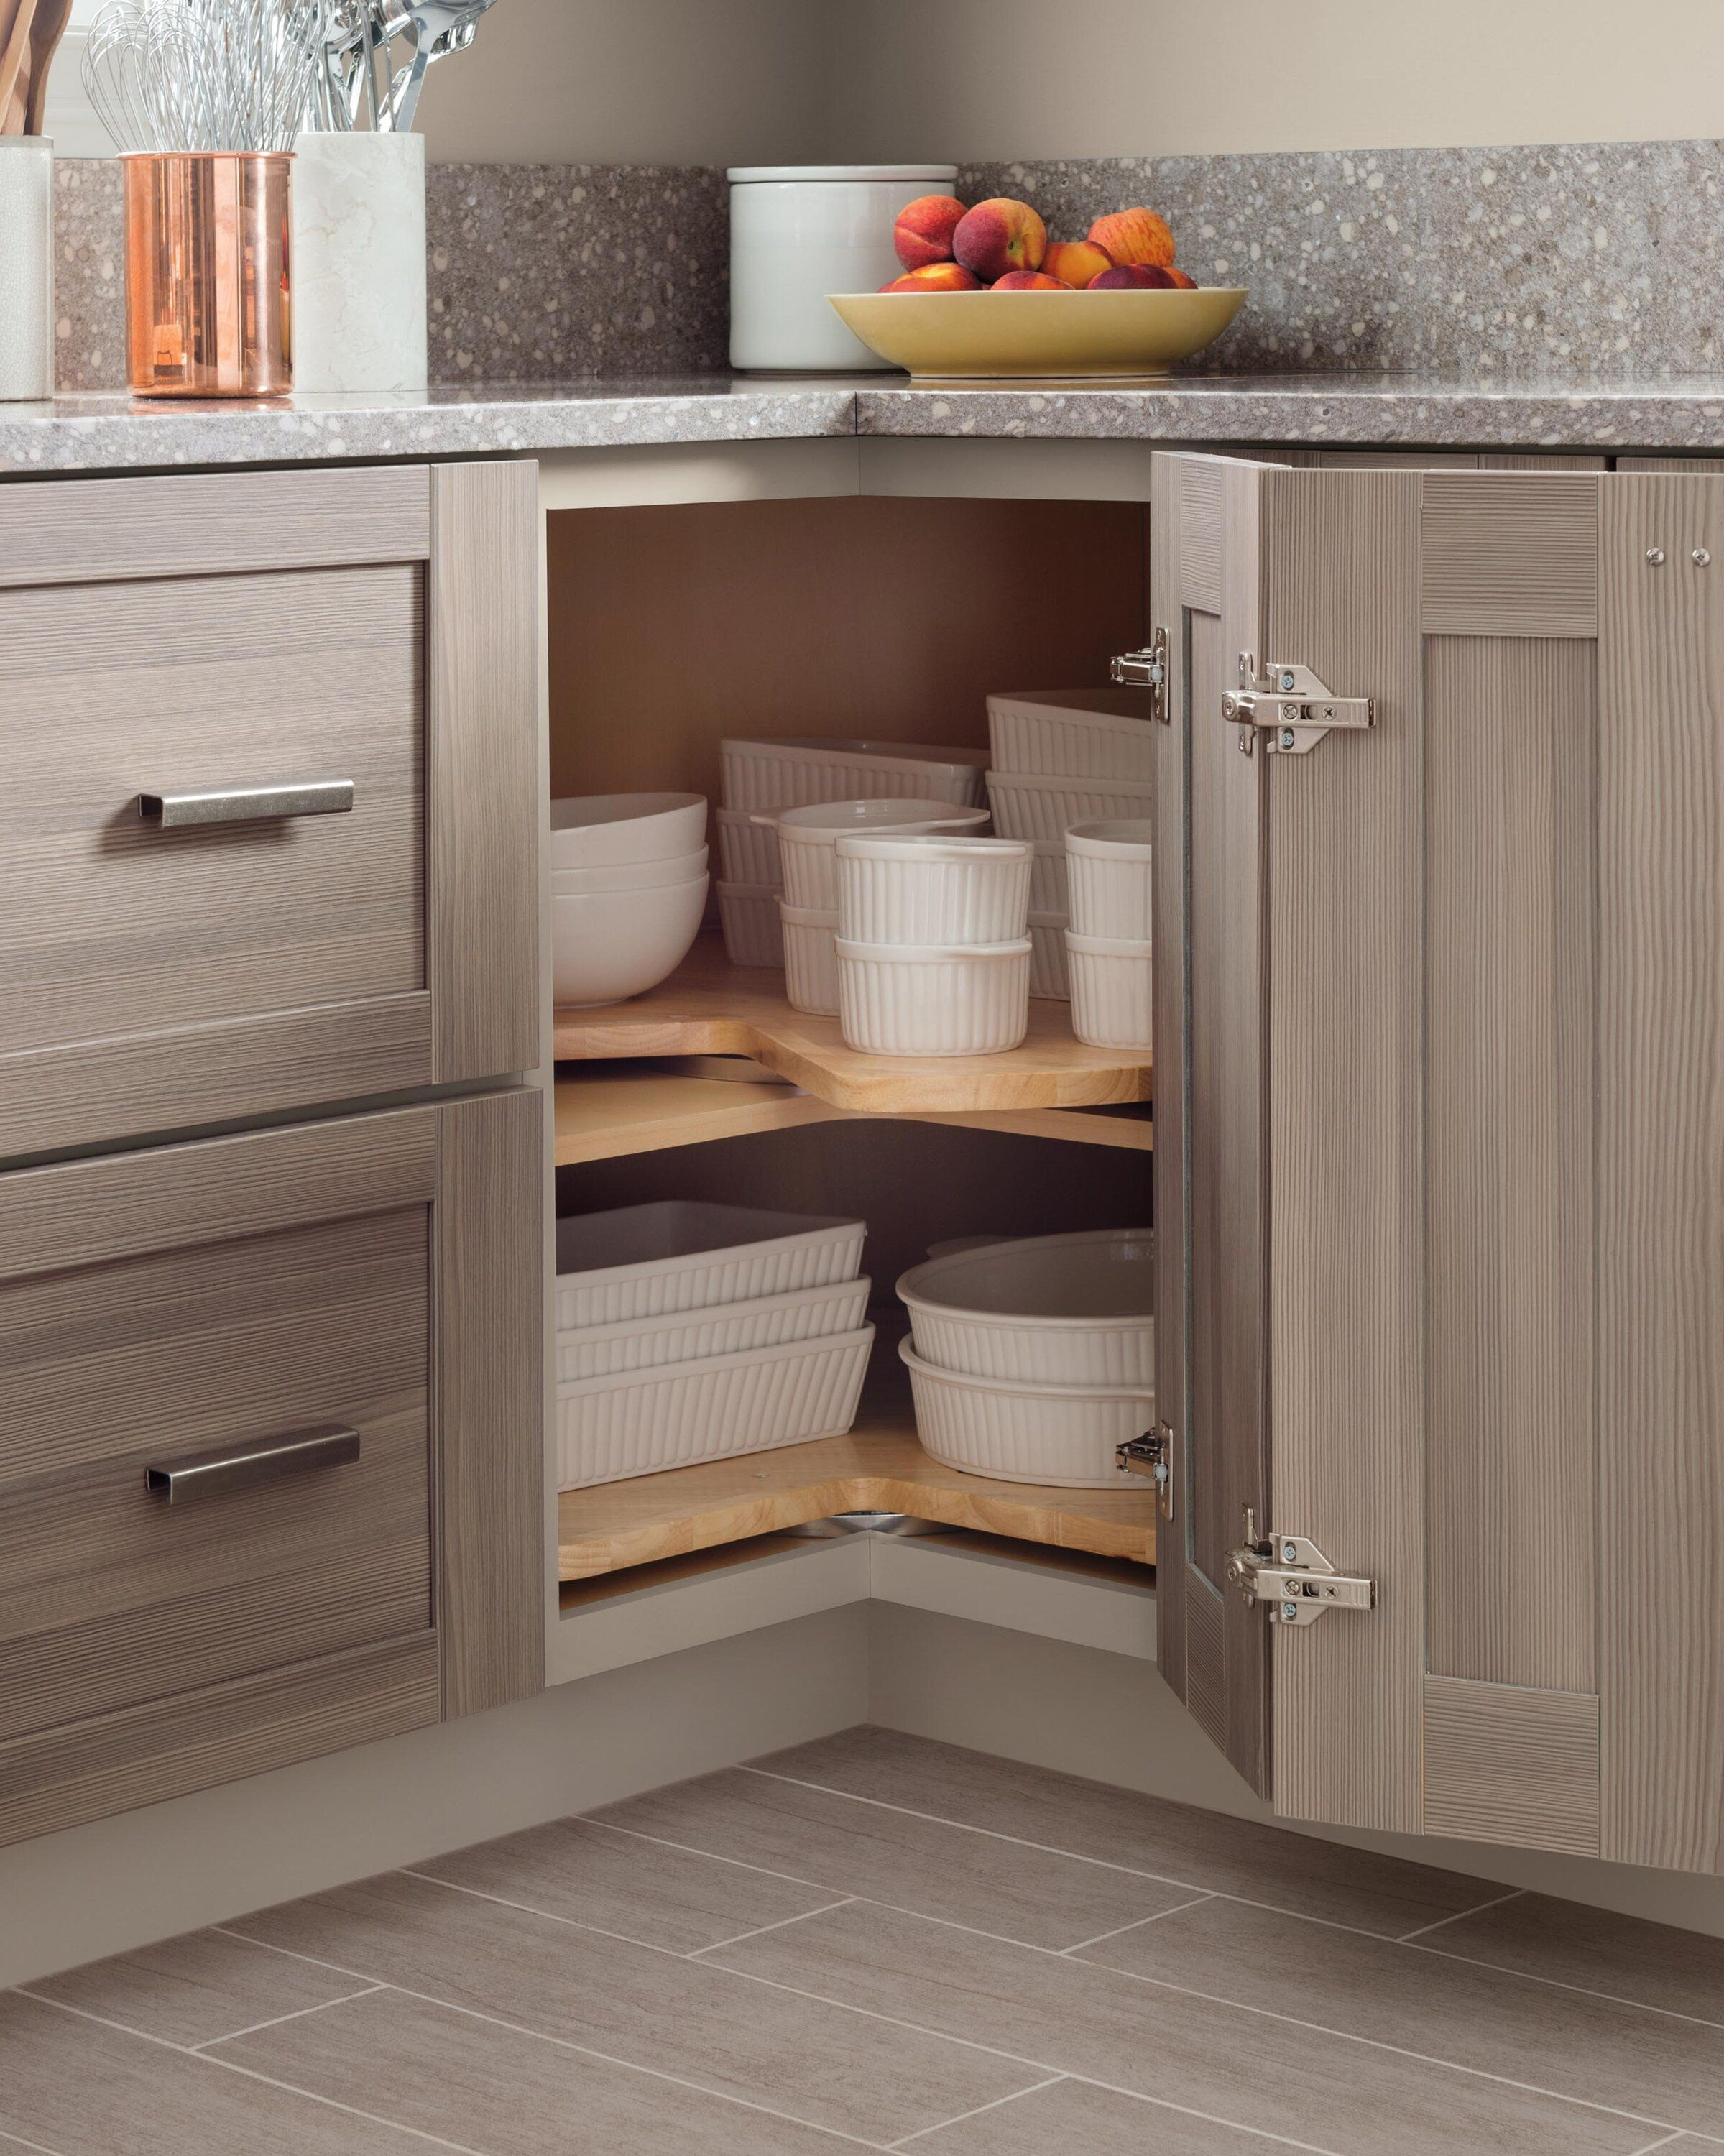 smart small kitchen ideas for a superior streamlined space in 2020 small kitchen storage on kitchen organization for small spaces id=54882